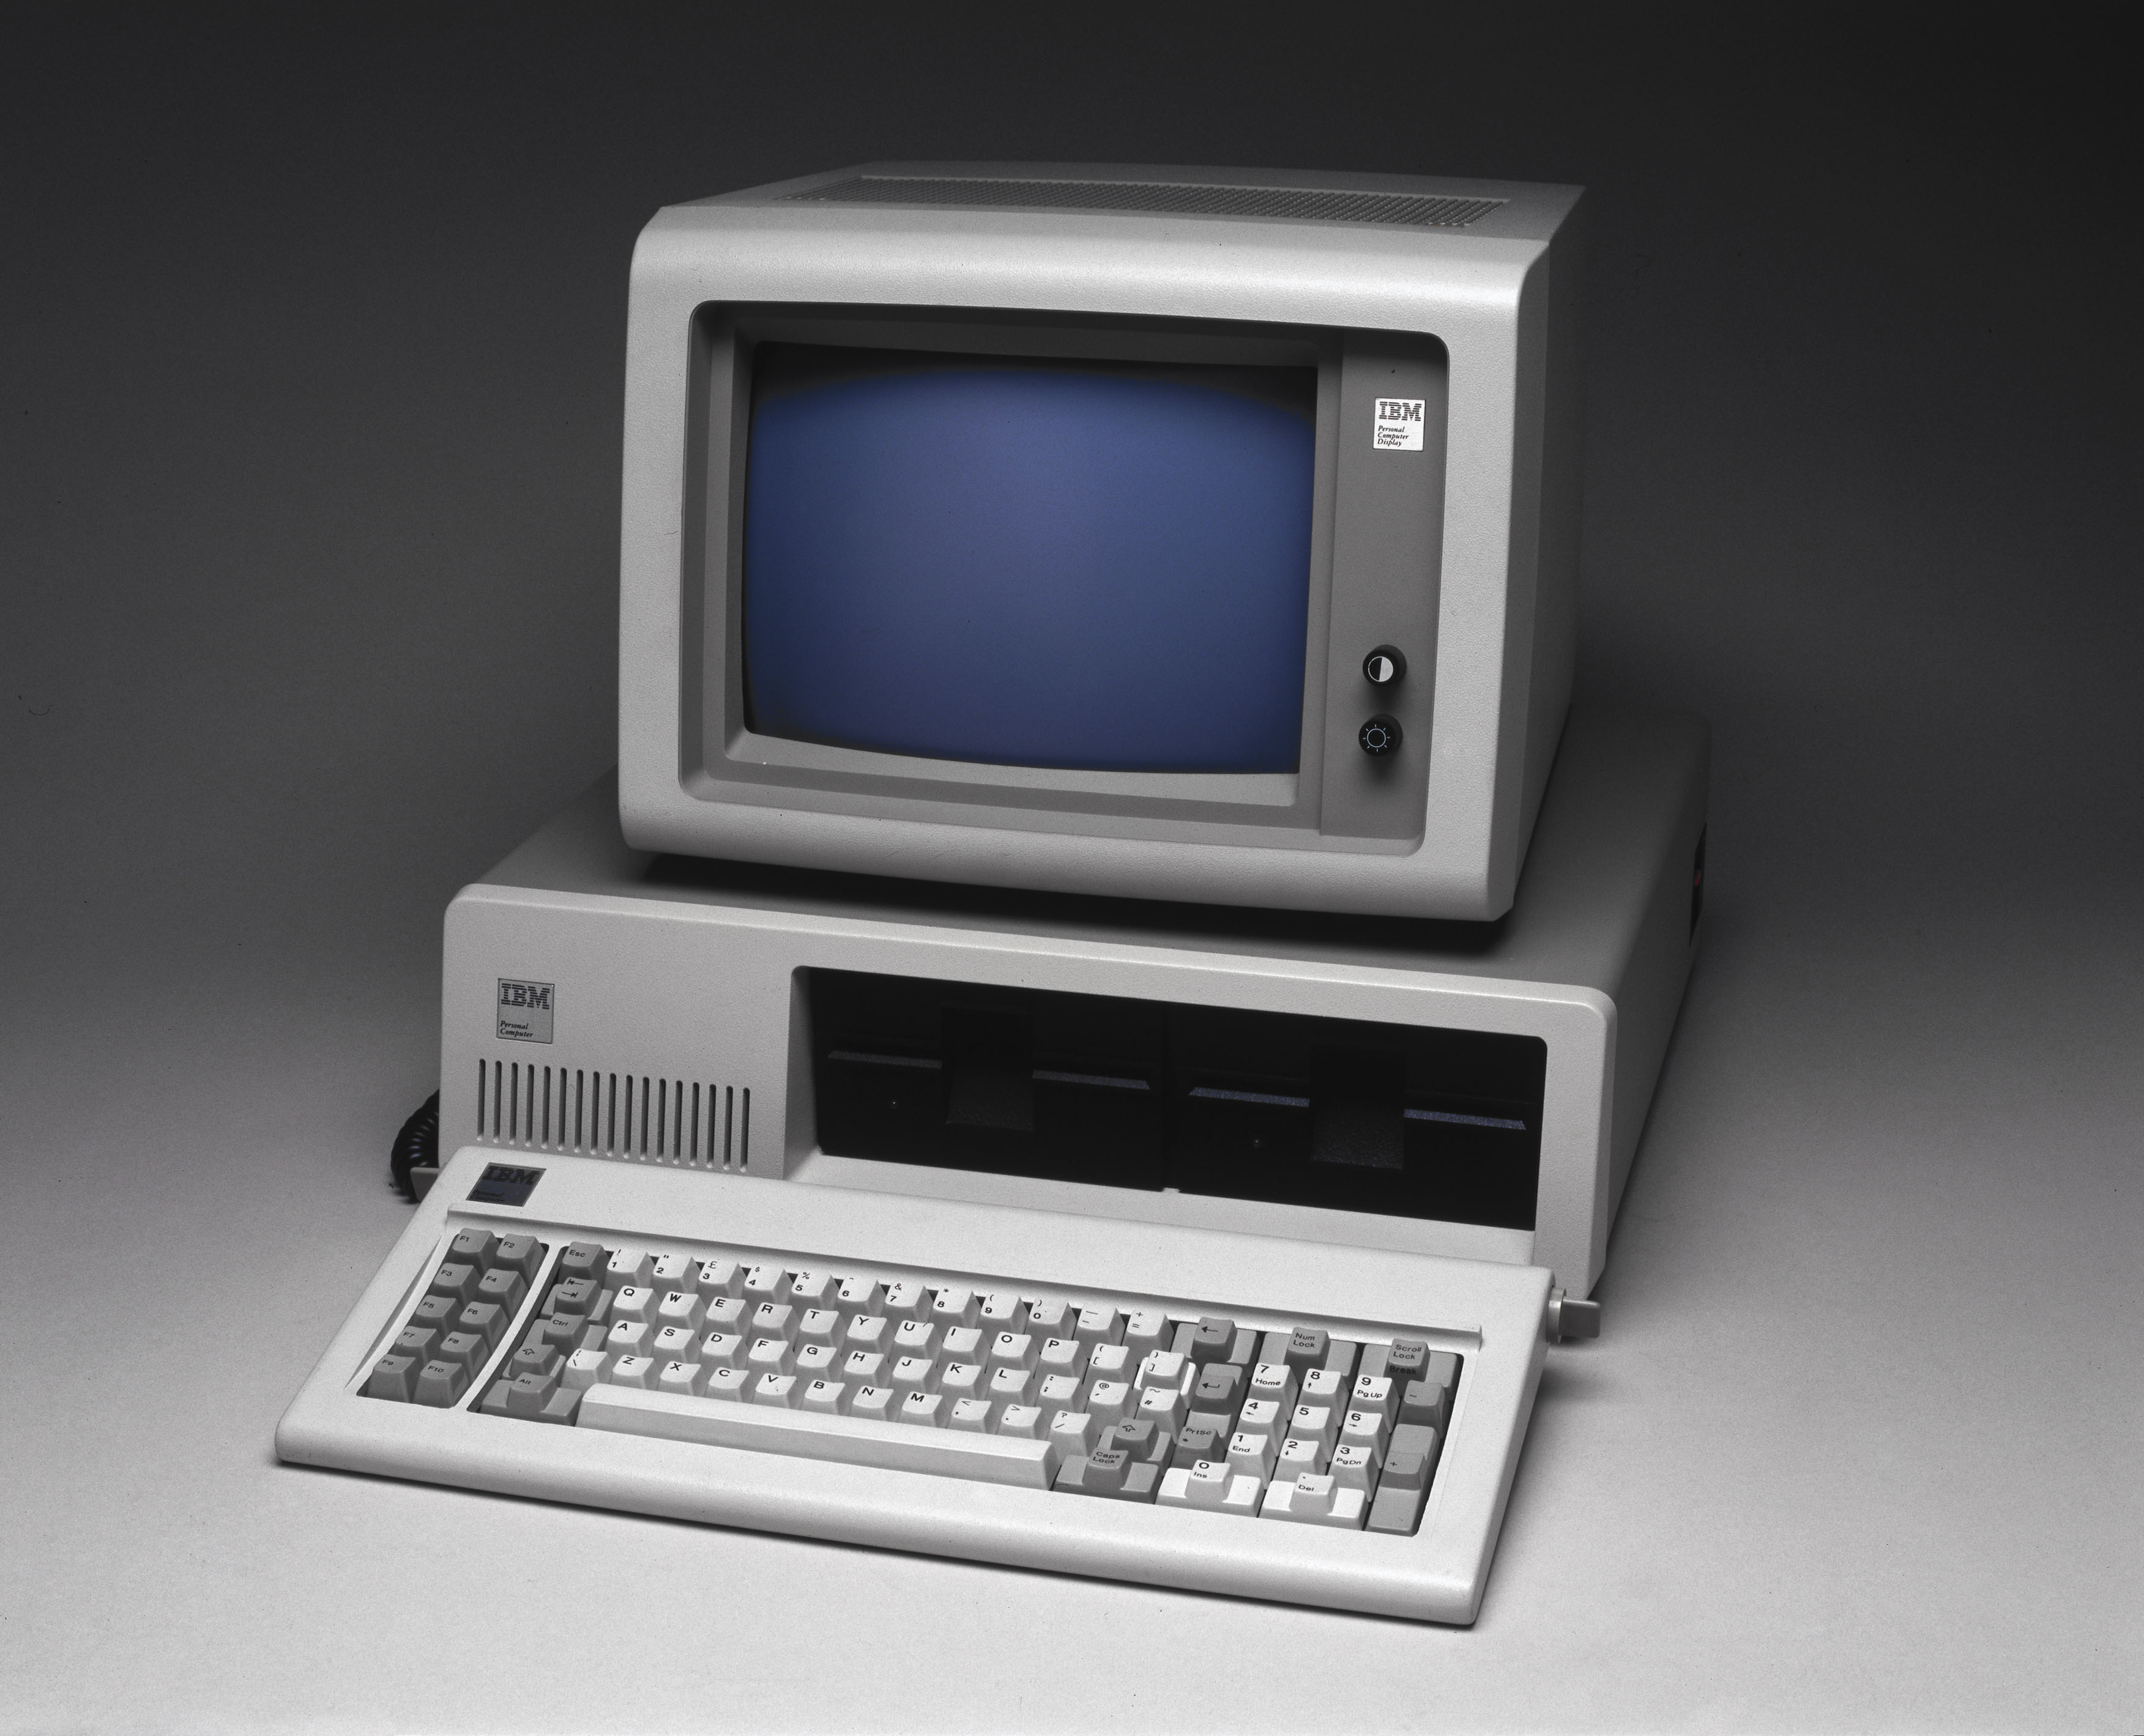 The IBM PC Turns 35 Today